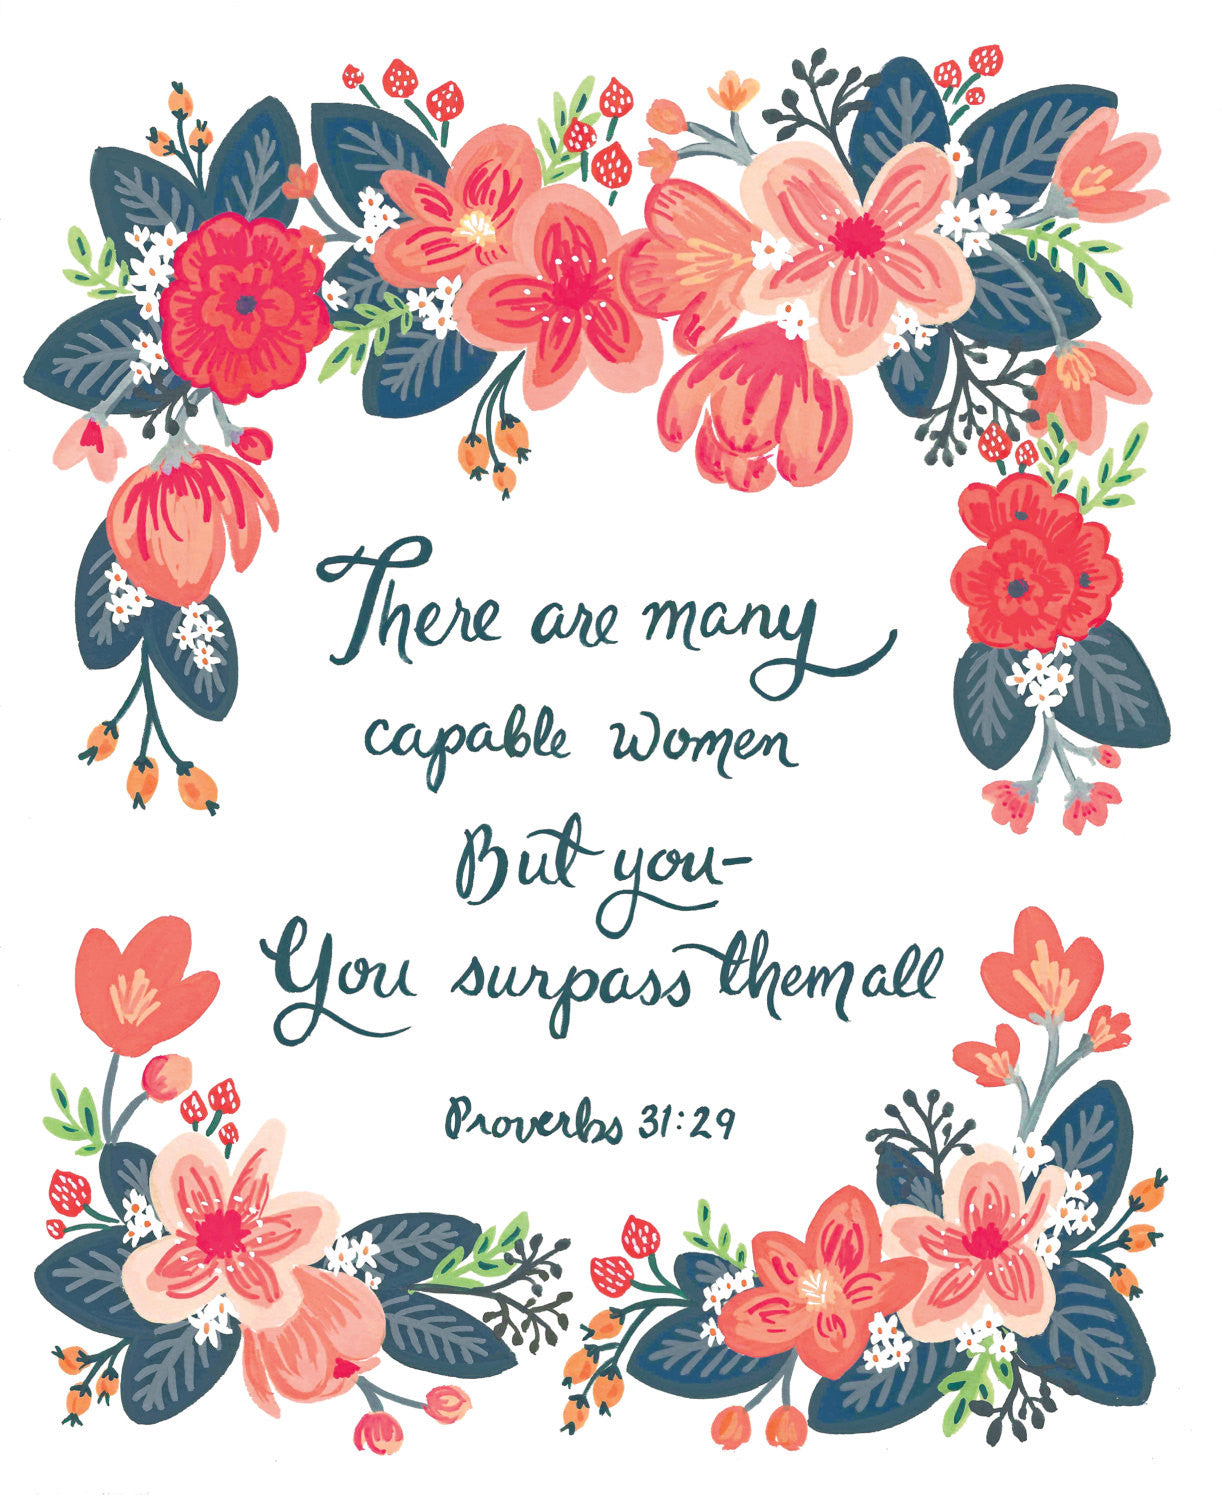 Capable Woman - Proverbs 31:29 8x10 Scriptural Wall Art Print